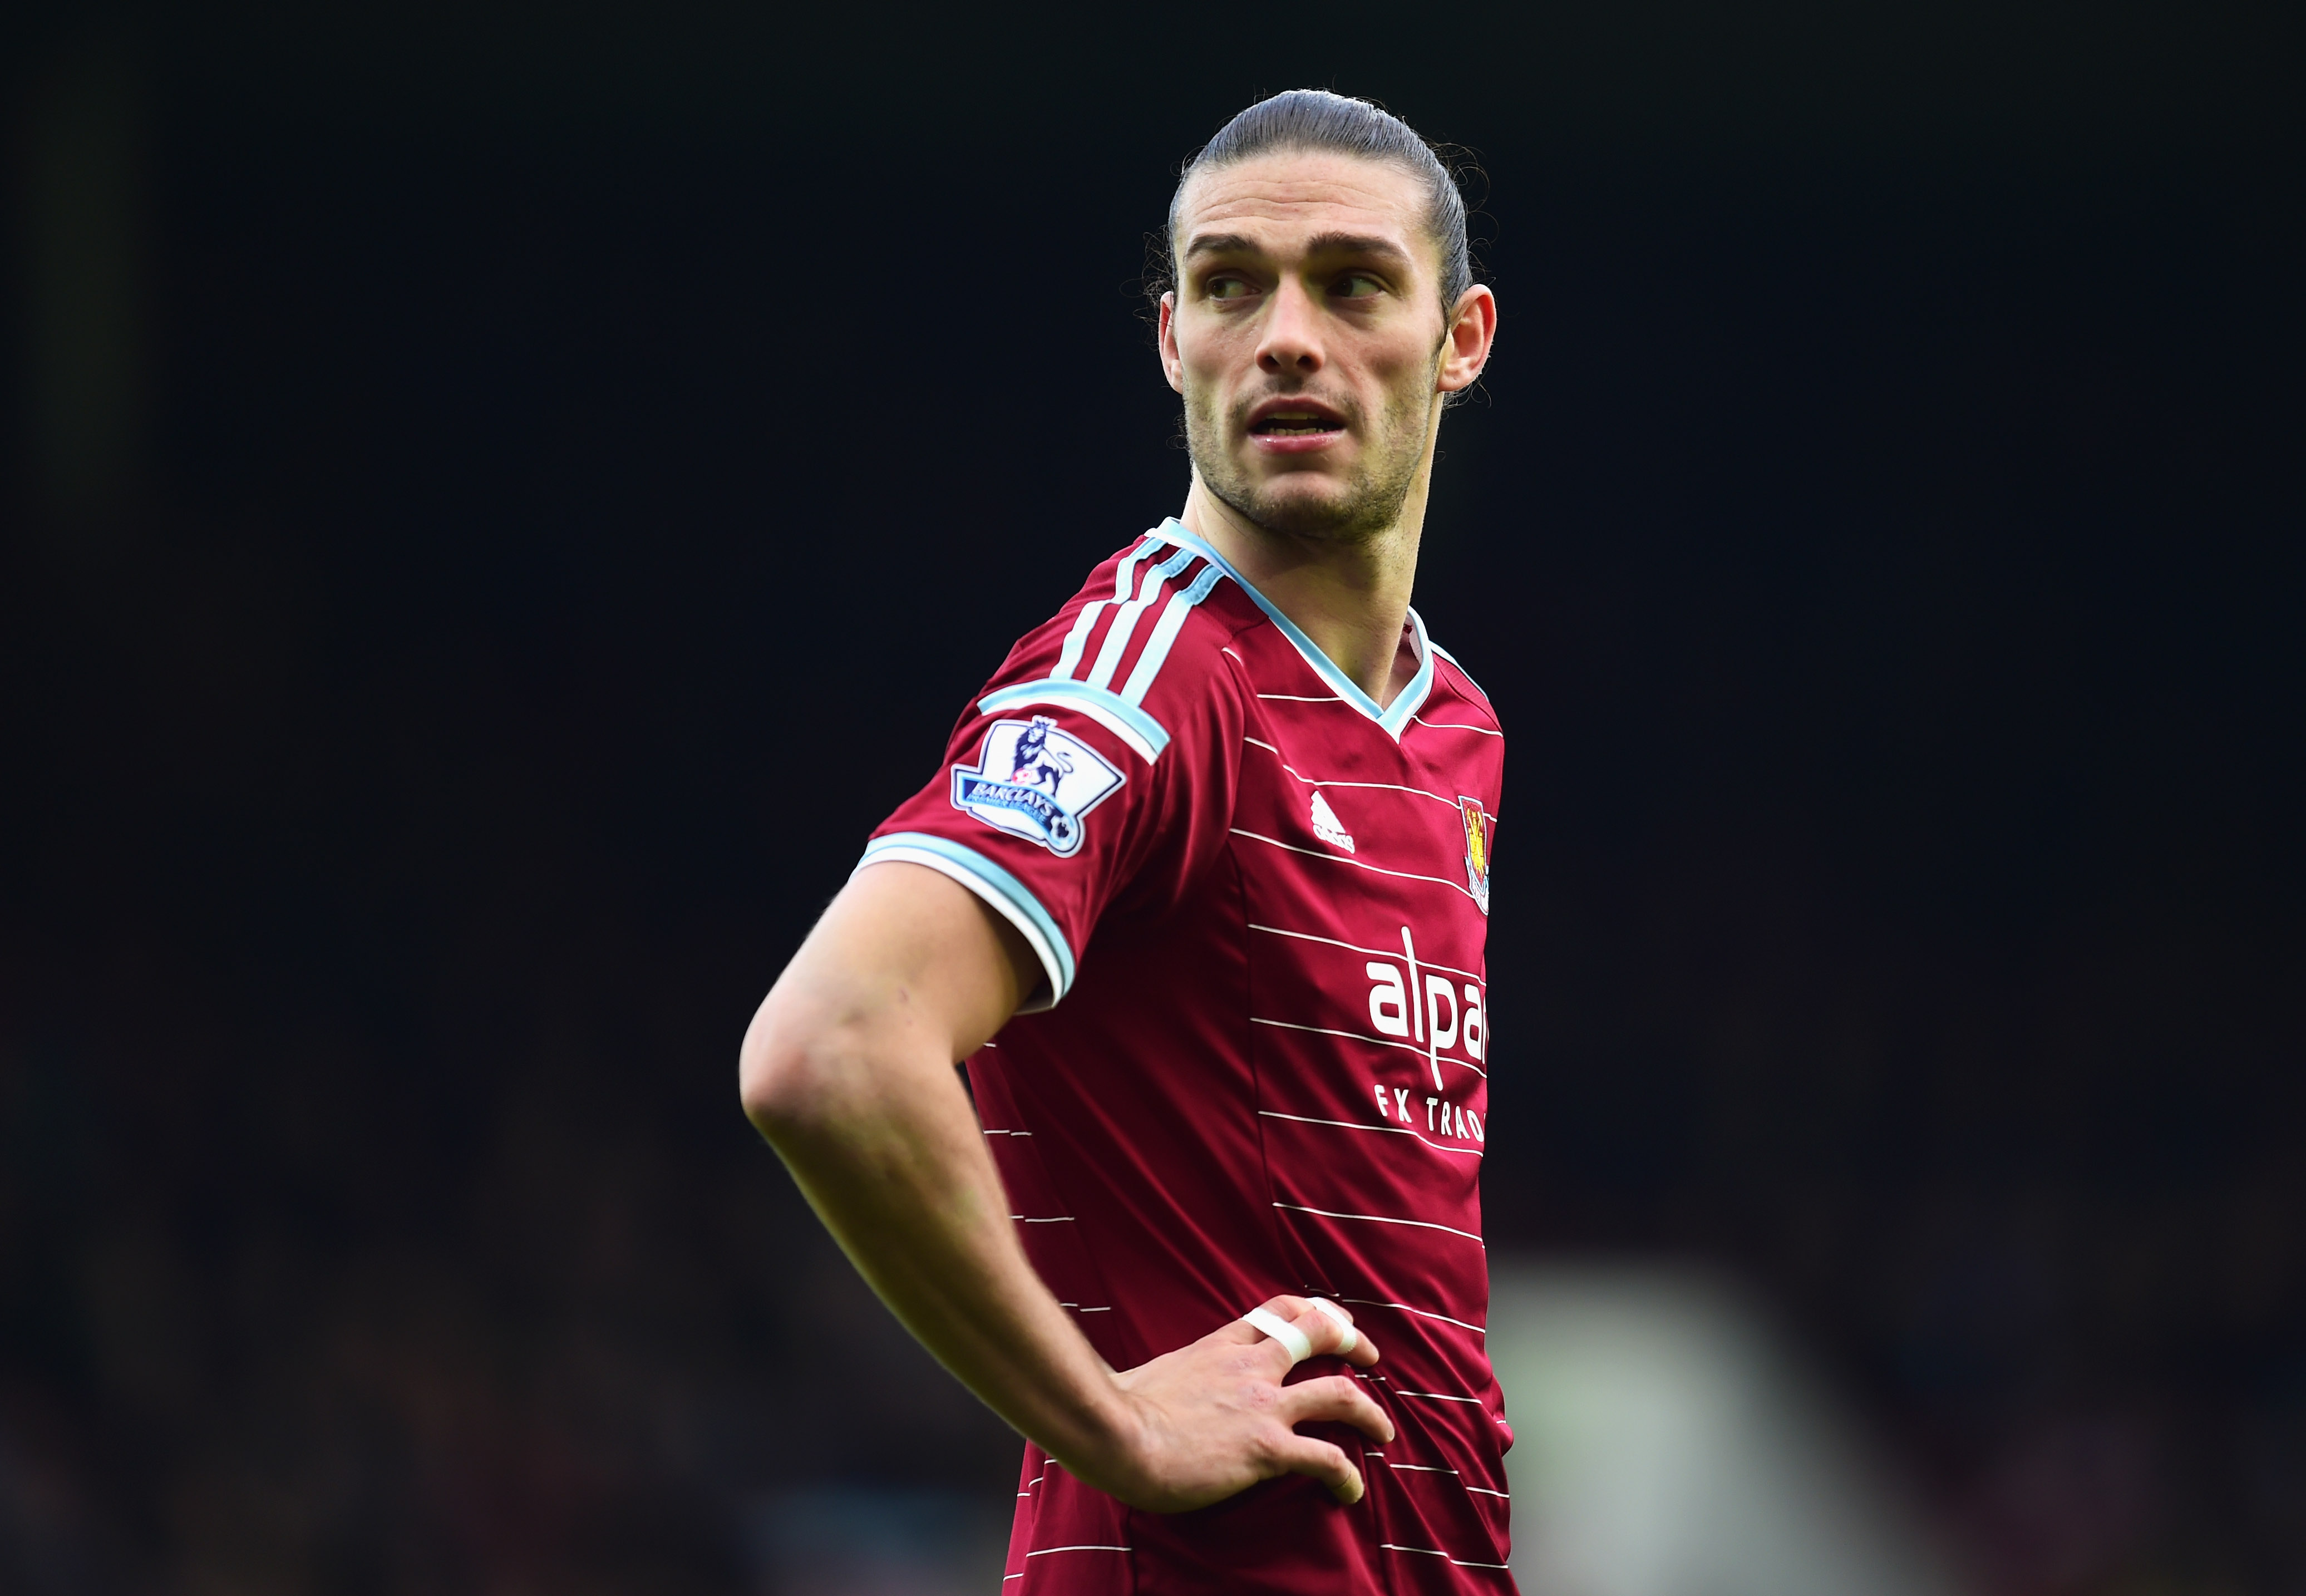 West Ham boss Slaven Bilic hails 'brave' Andy Carroll after being held up at gunpoint